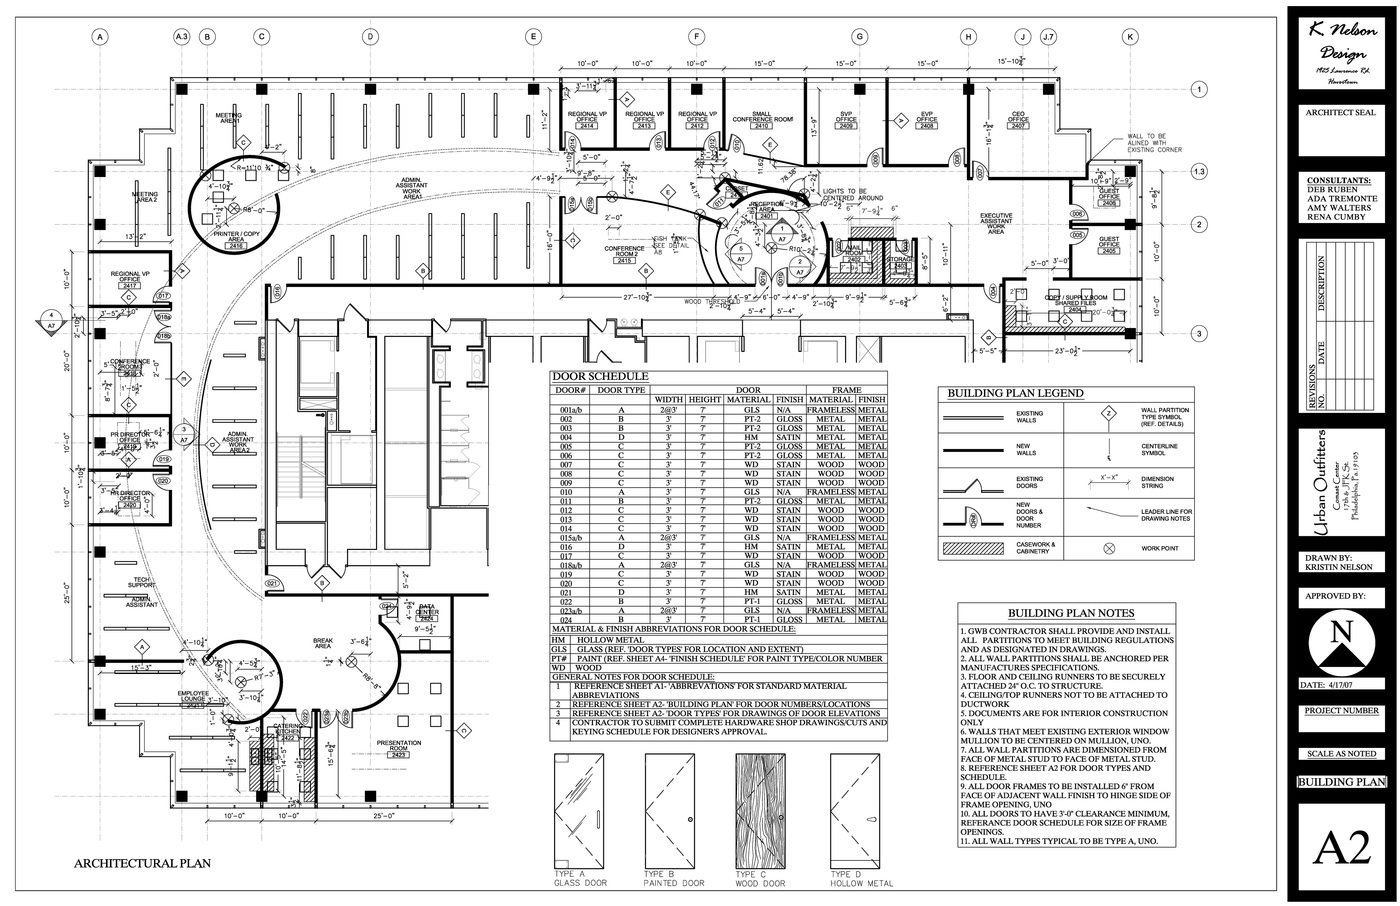 Construction Documents By Kristin M Nelson At